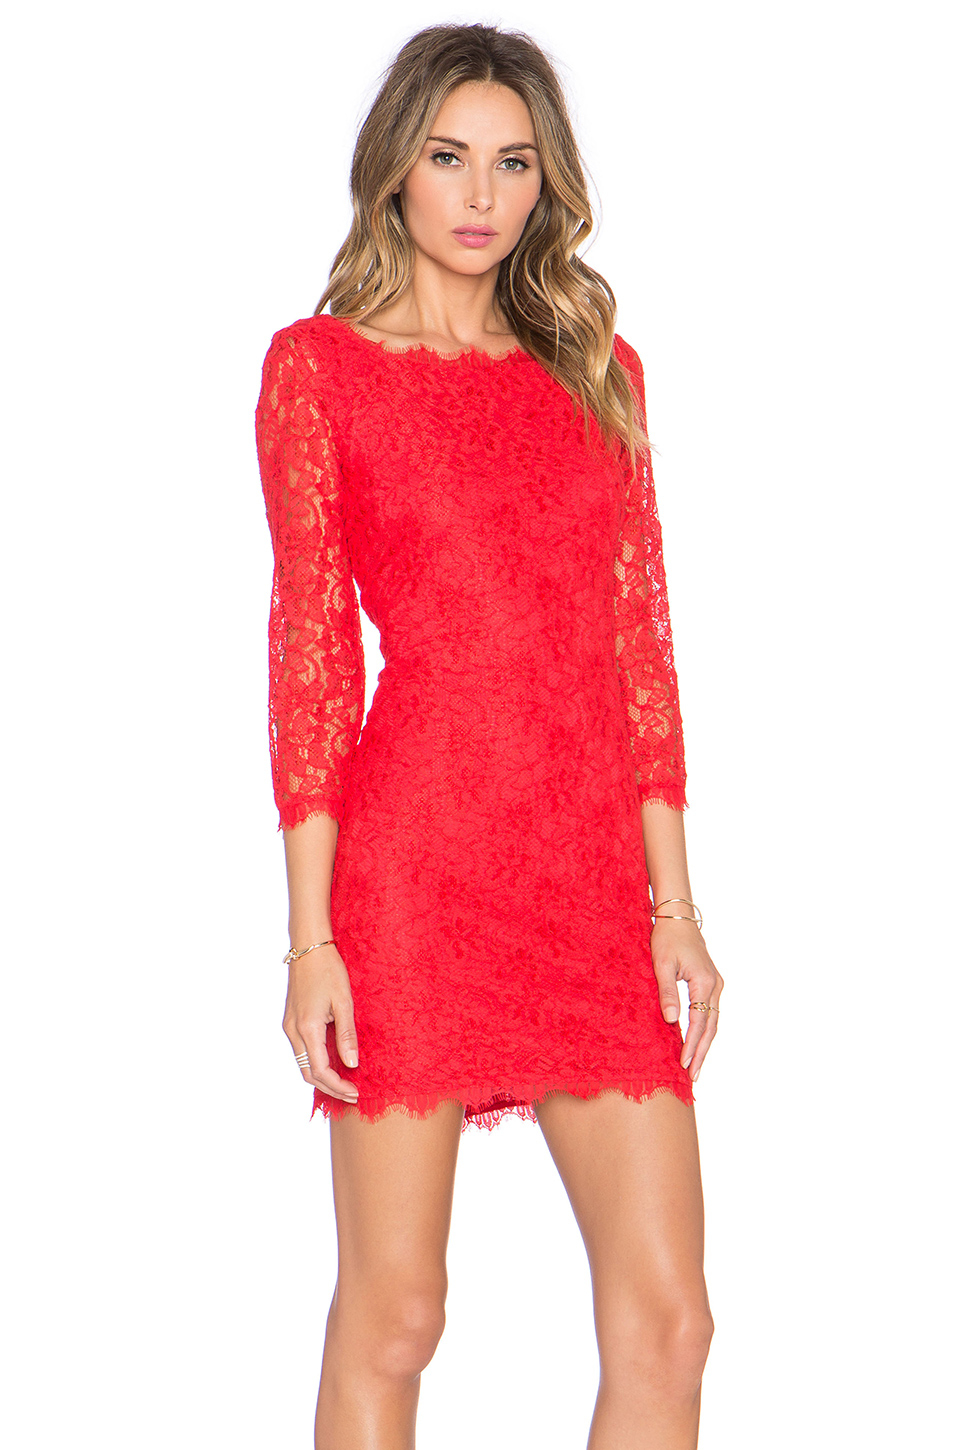 Diane von furstenberg zarita dress in red lyst for Diane von furstenberg clothes